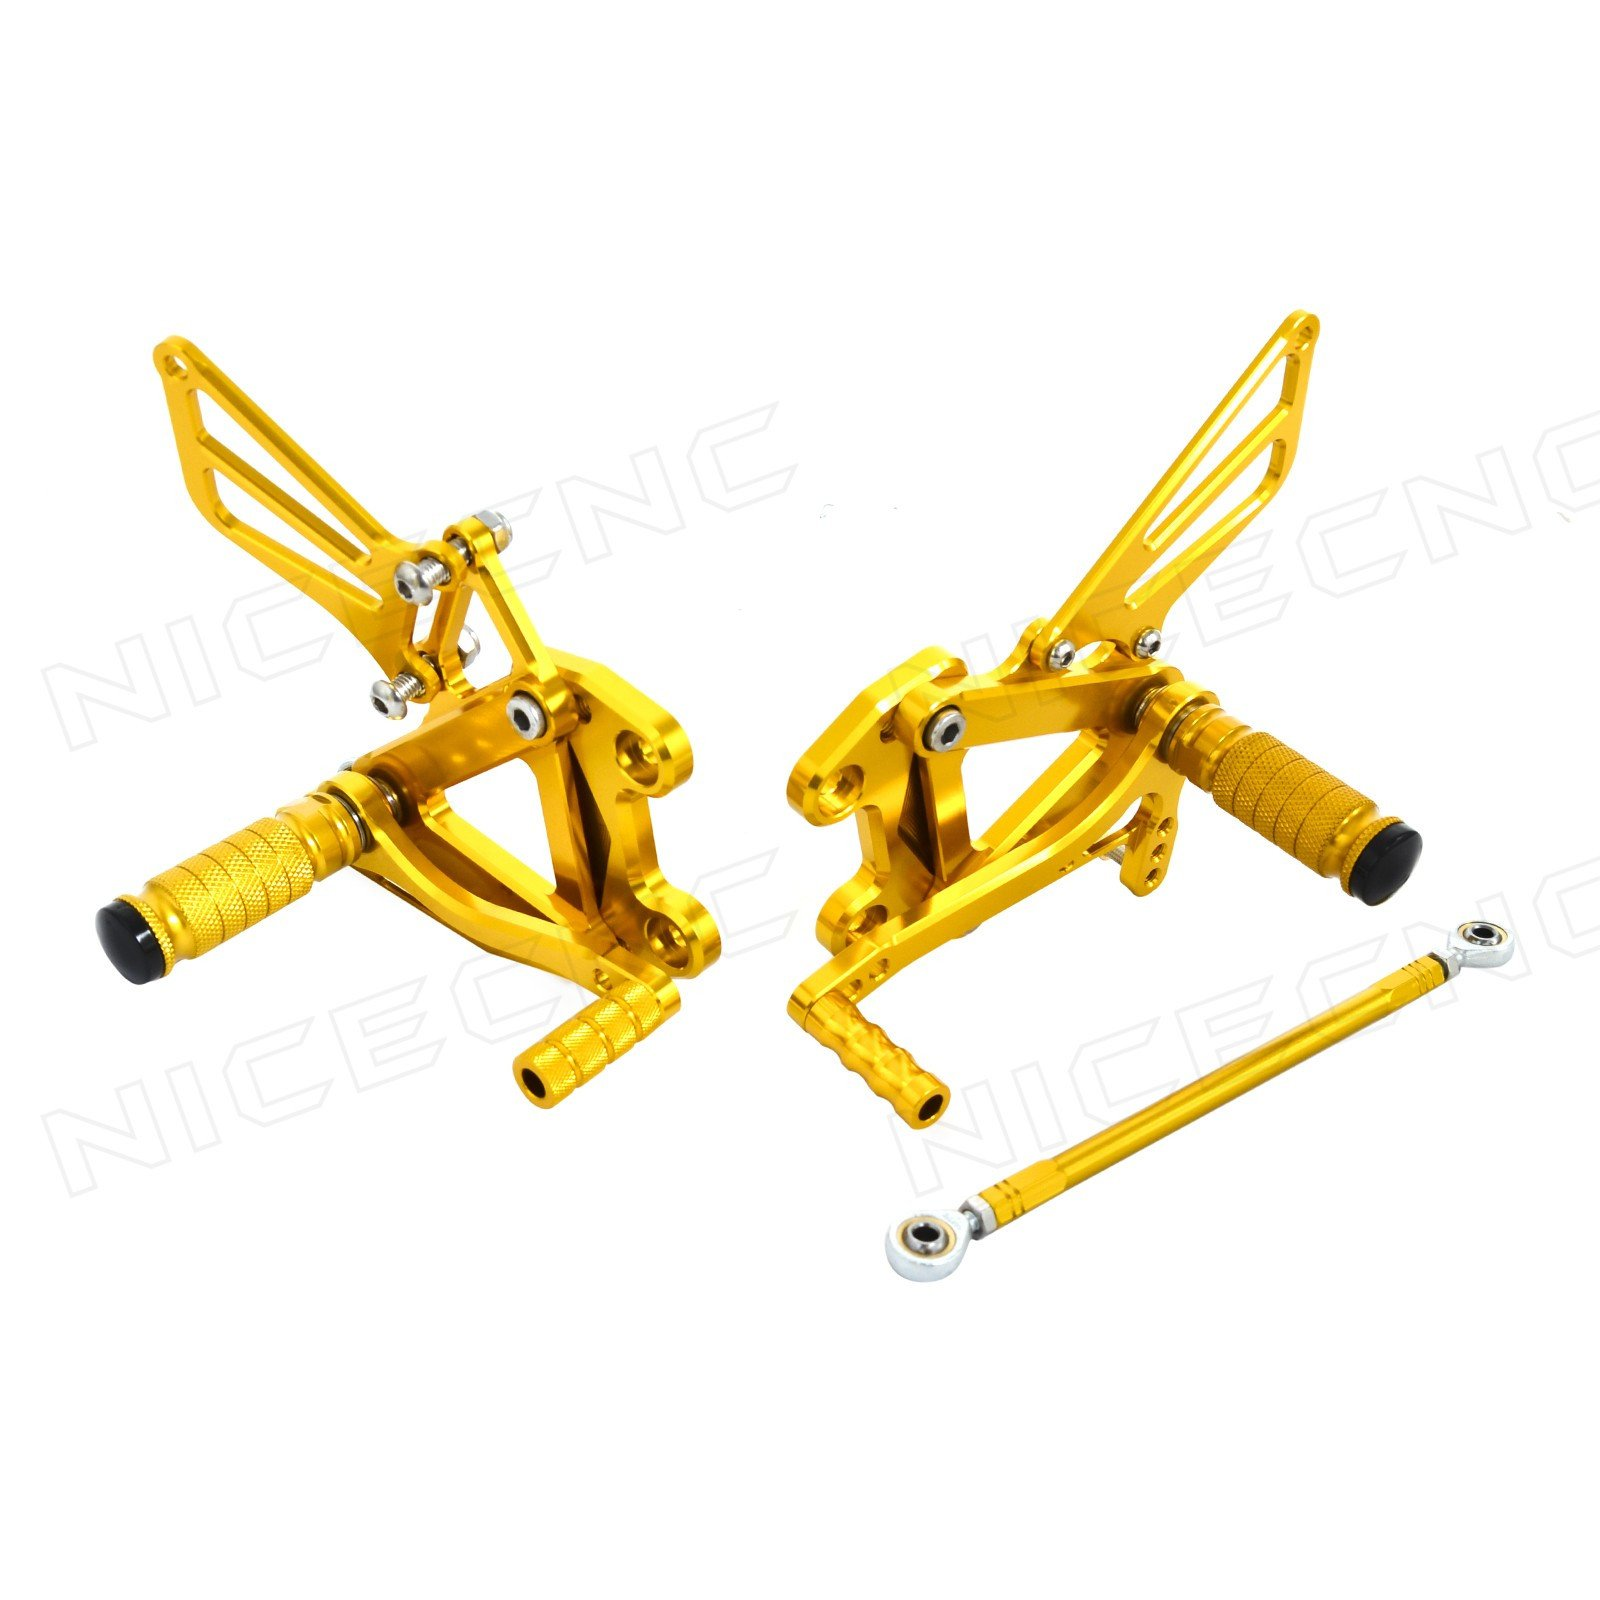 NICECNC Gold Adjustable Left and Right Racing Rearsets/Rear Sets Footrests for Kawasaki ZZR600 2005-2008 Ninja ZX-6 ZX-6R 1998-2002 ZX-9R 1998-2003